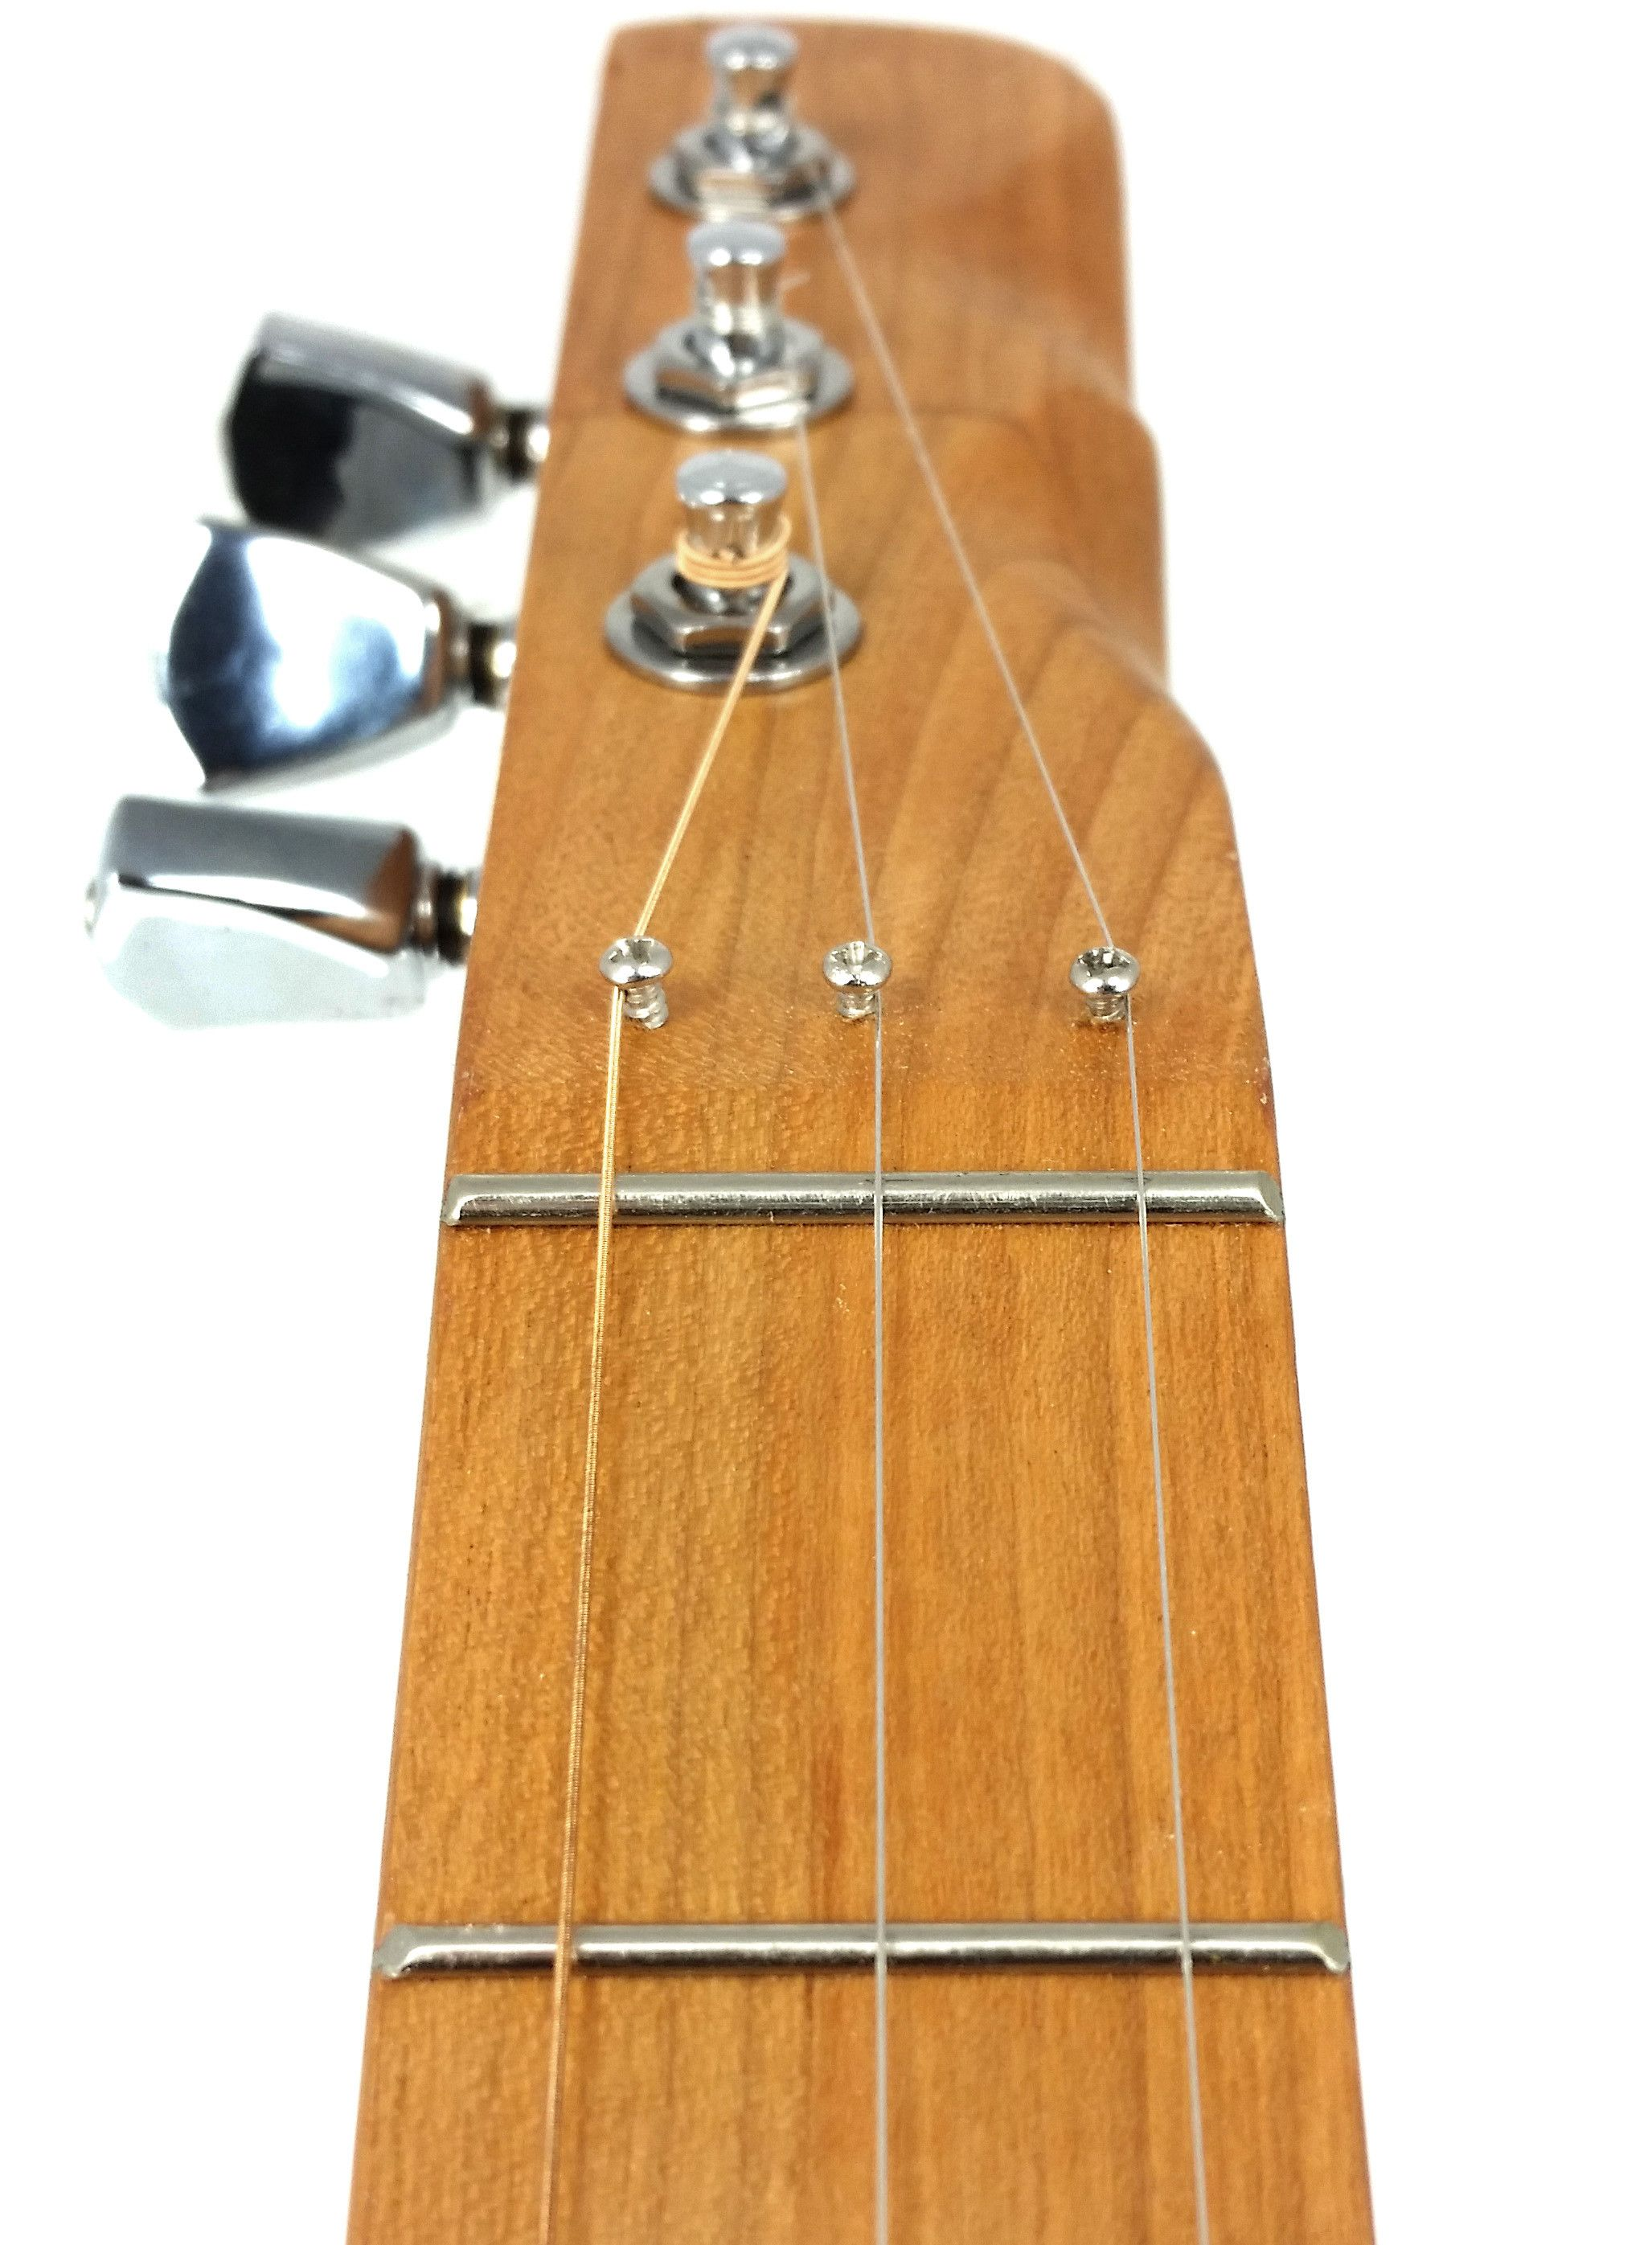 The Home Of The Cigar Box Guitar Movement Zero Frets How And Why To Use Them On Cigar Box Guitars Cigar Box Guitar Box Guitar Cigar Box Guitar Plans